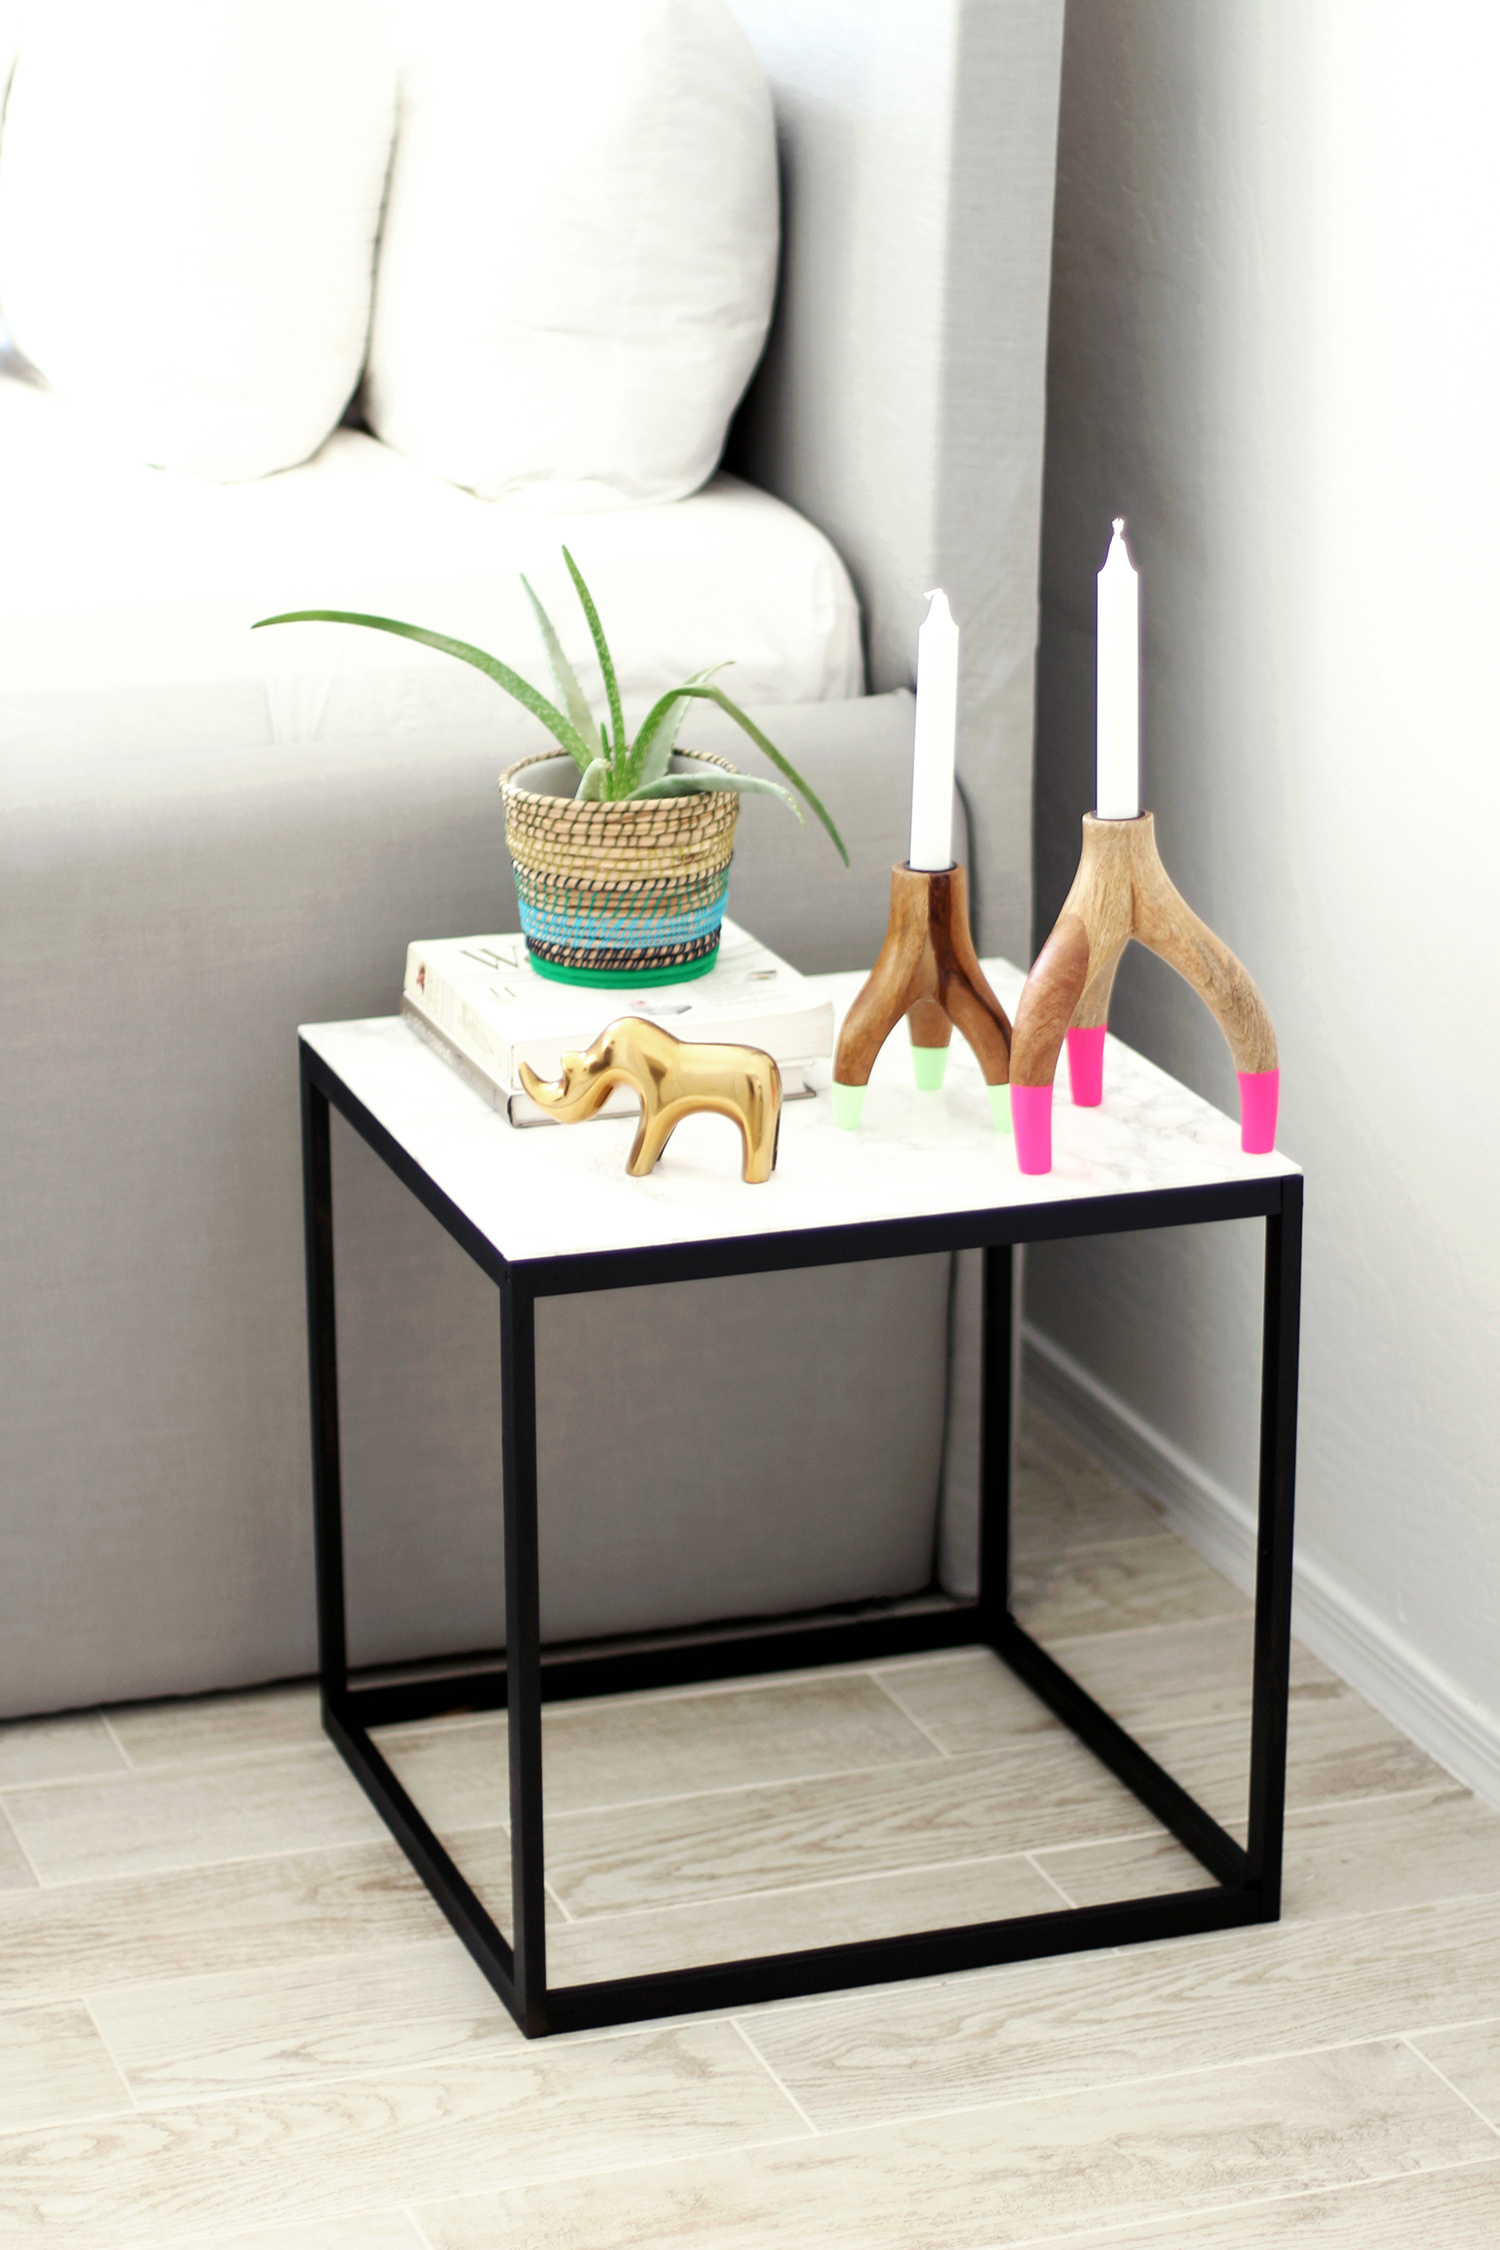 West Elm Inspired DIY Marble Table — Kristi Murphy